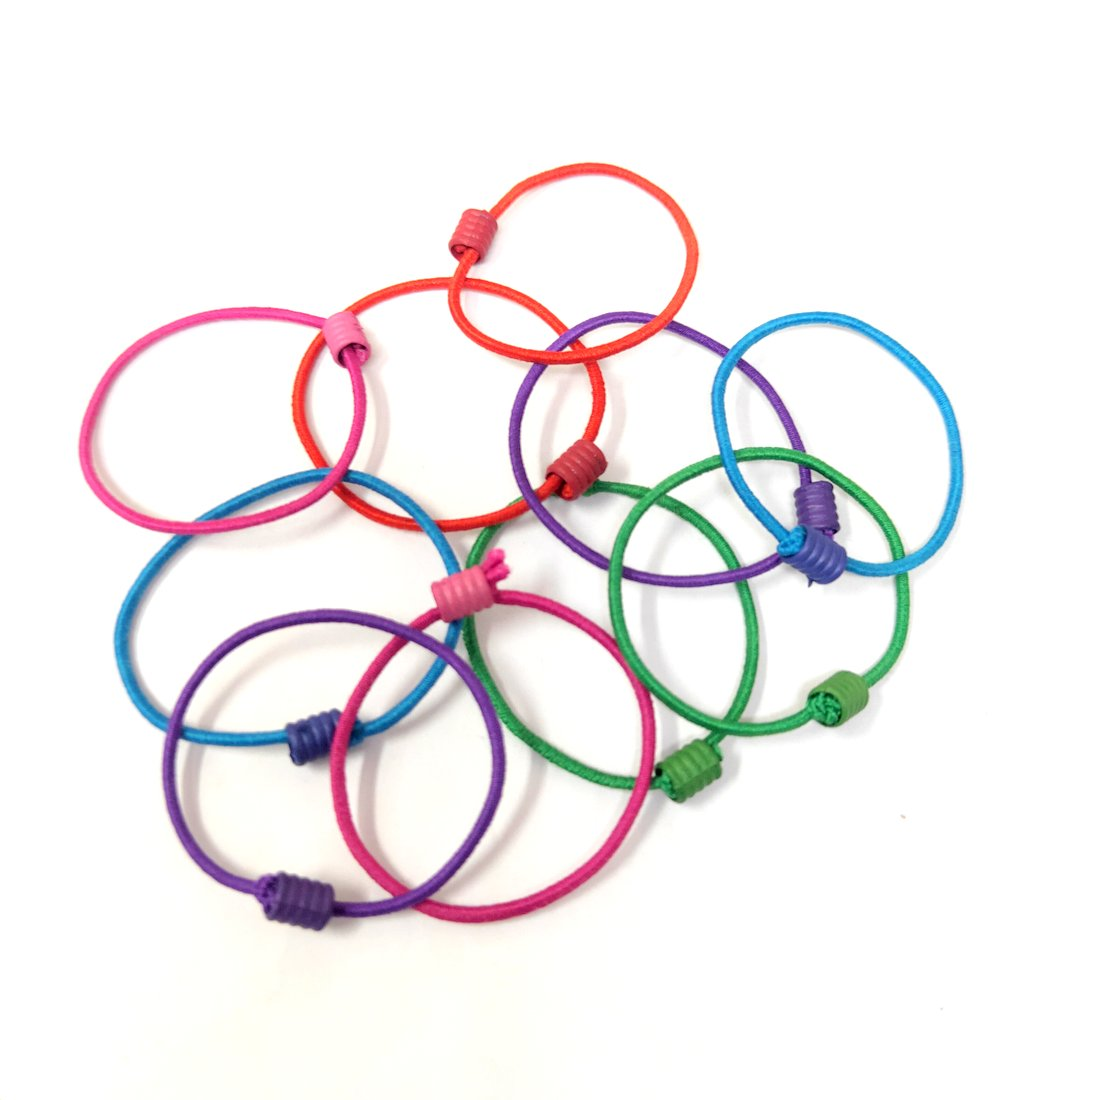 Anokhi Ada small size Elastic Rubber for Girls and Women (15-23 Ponytail Holders, 10 Pcs Assorted Colour Rubber)